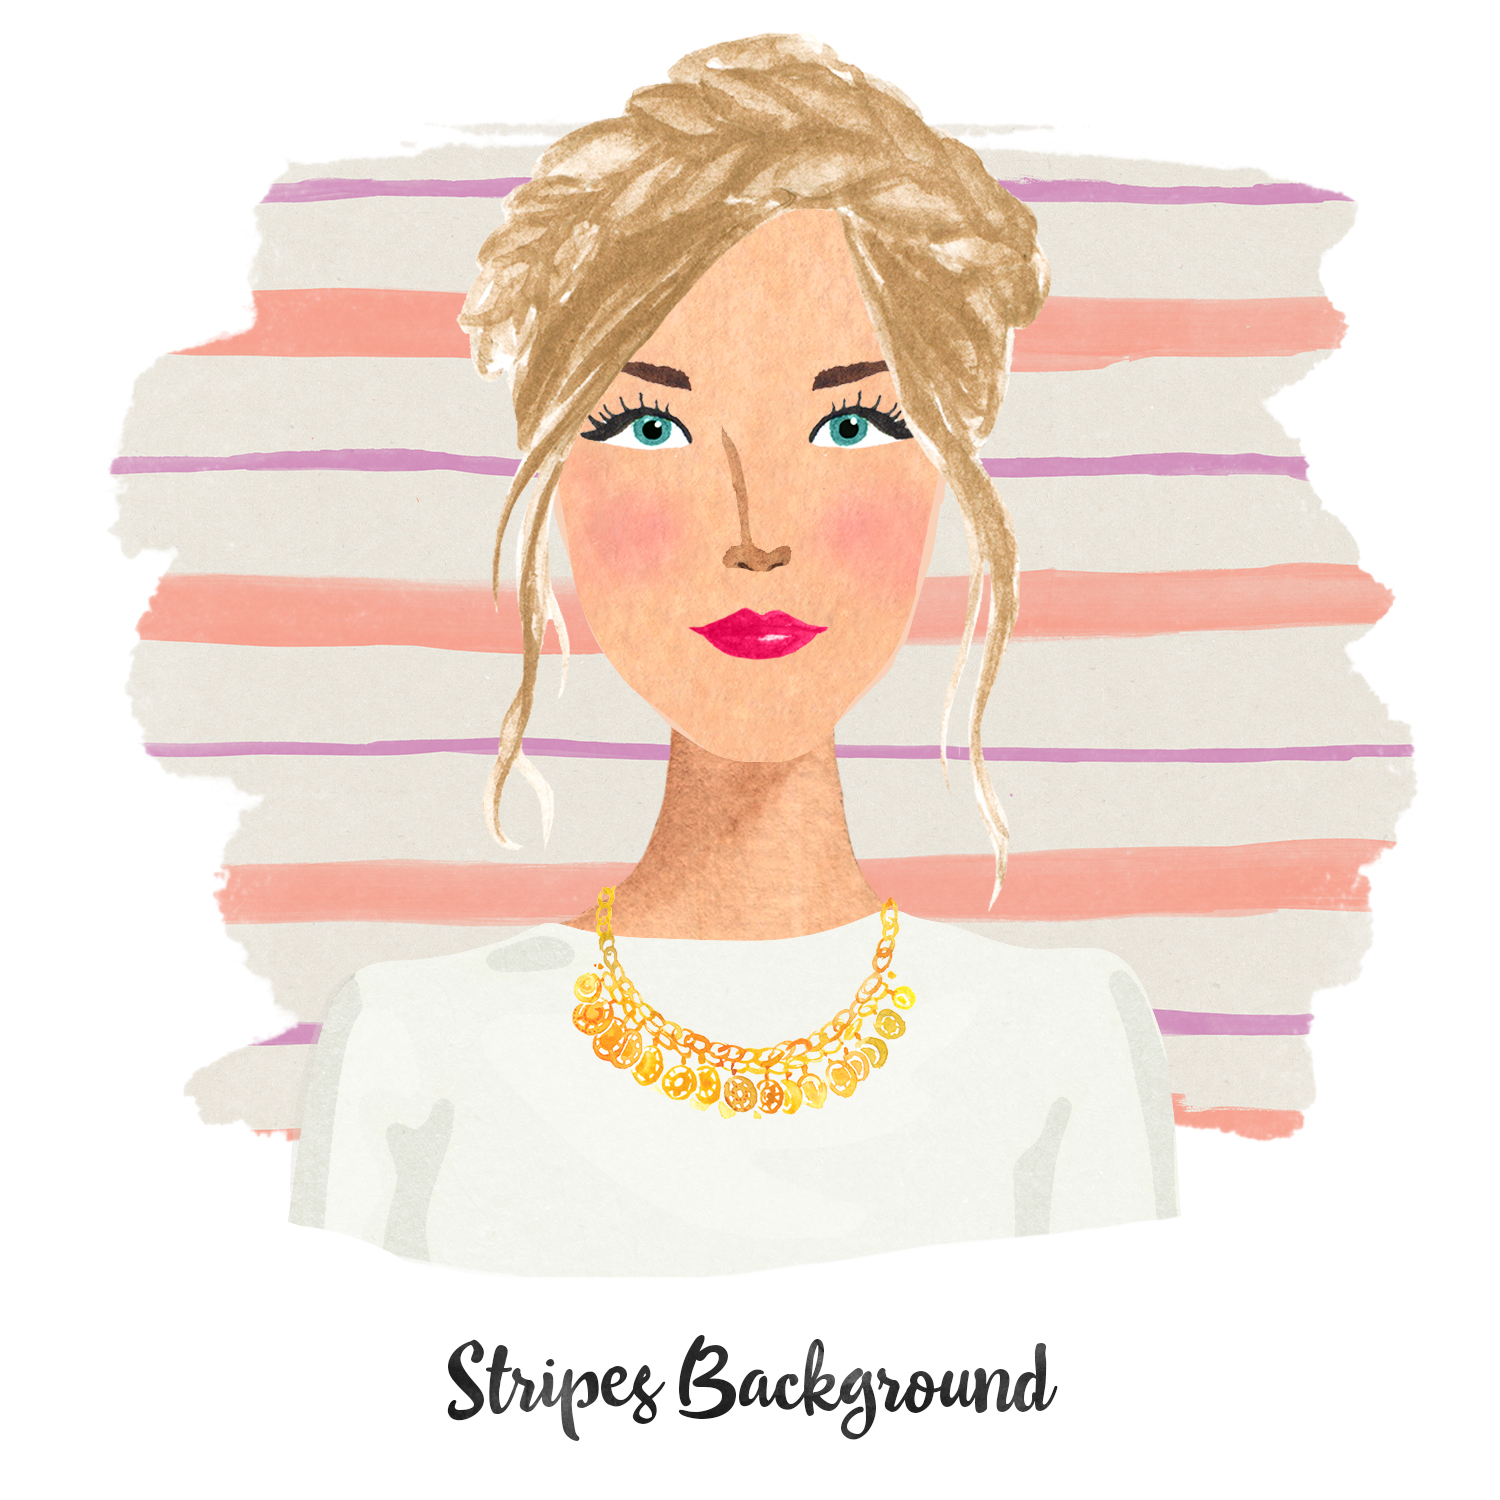 Background Stripes 01.jpg